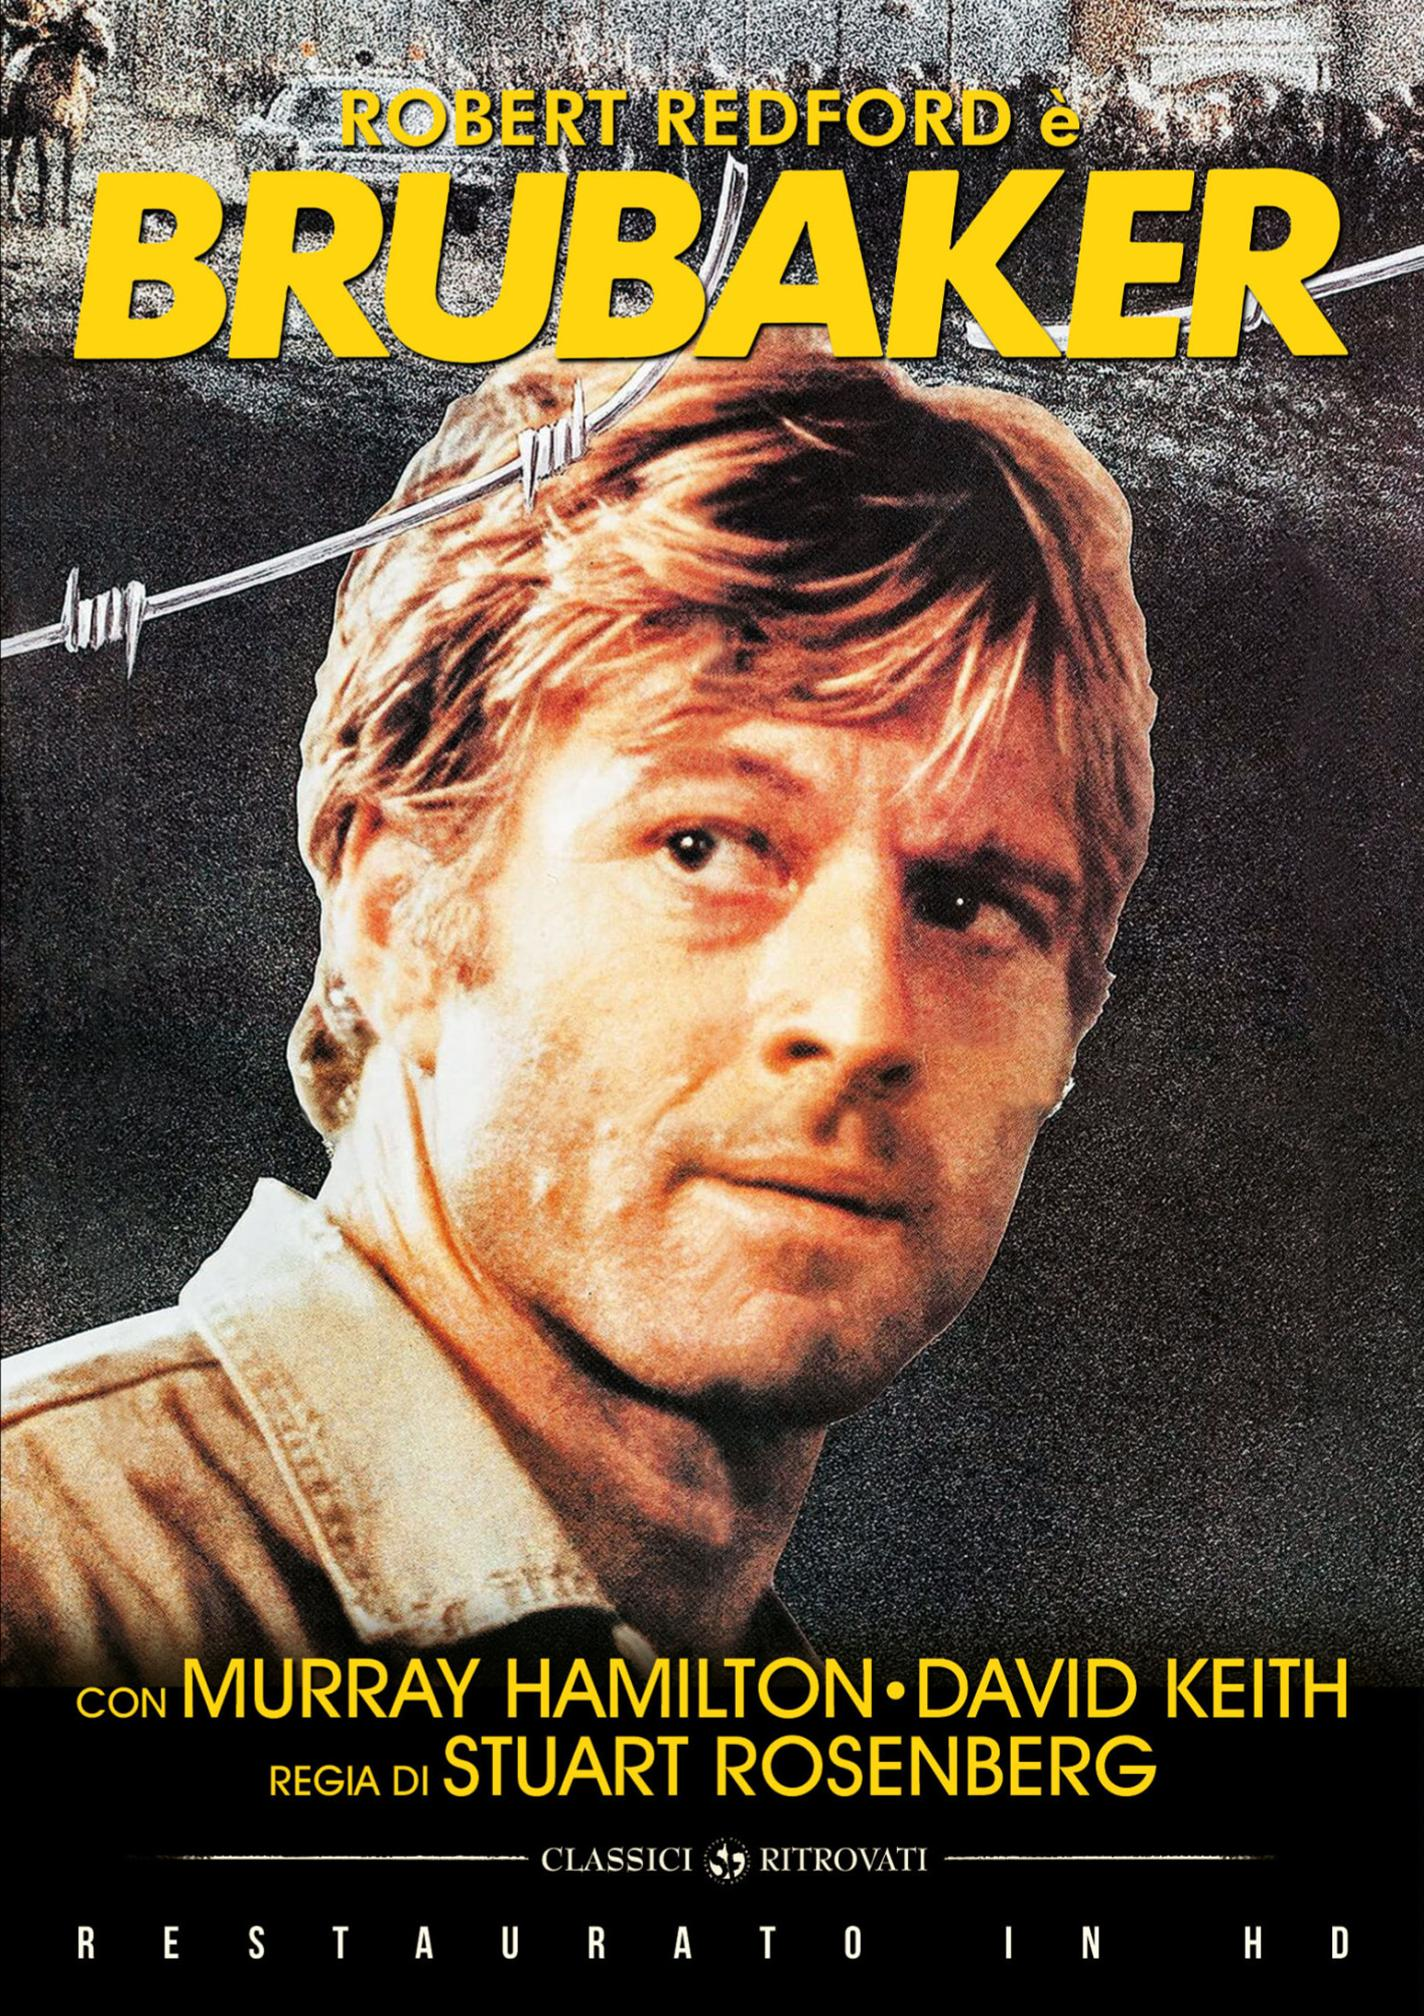 BRUBAKER (RESTAURATO IN HD) (DVD)